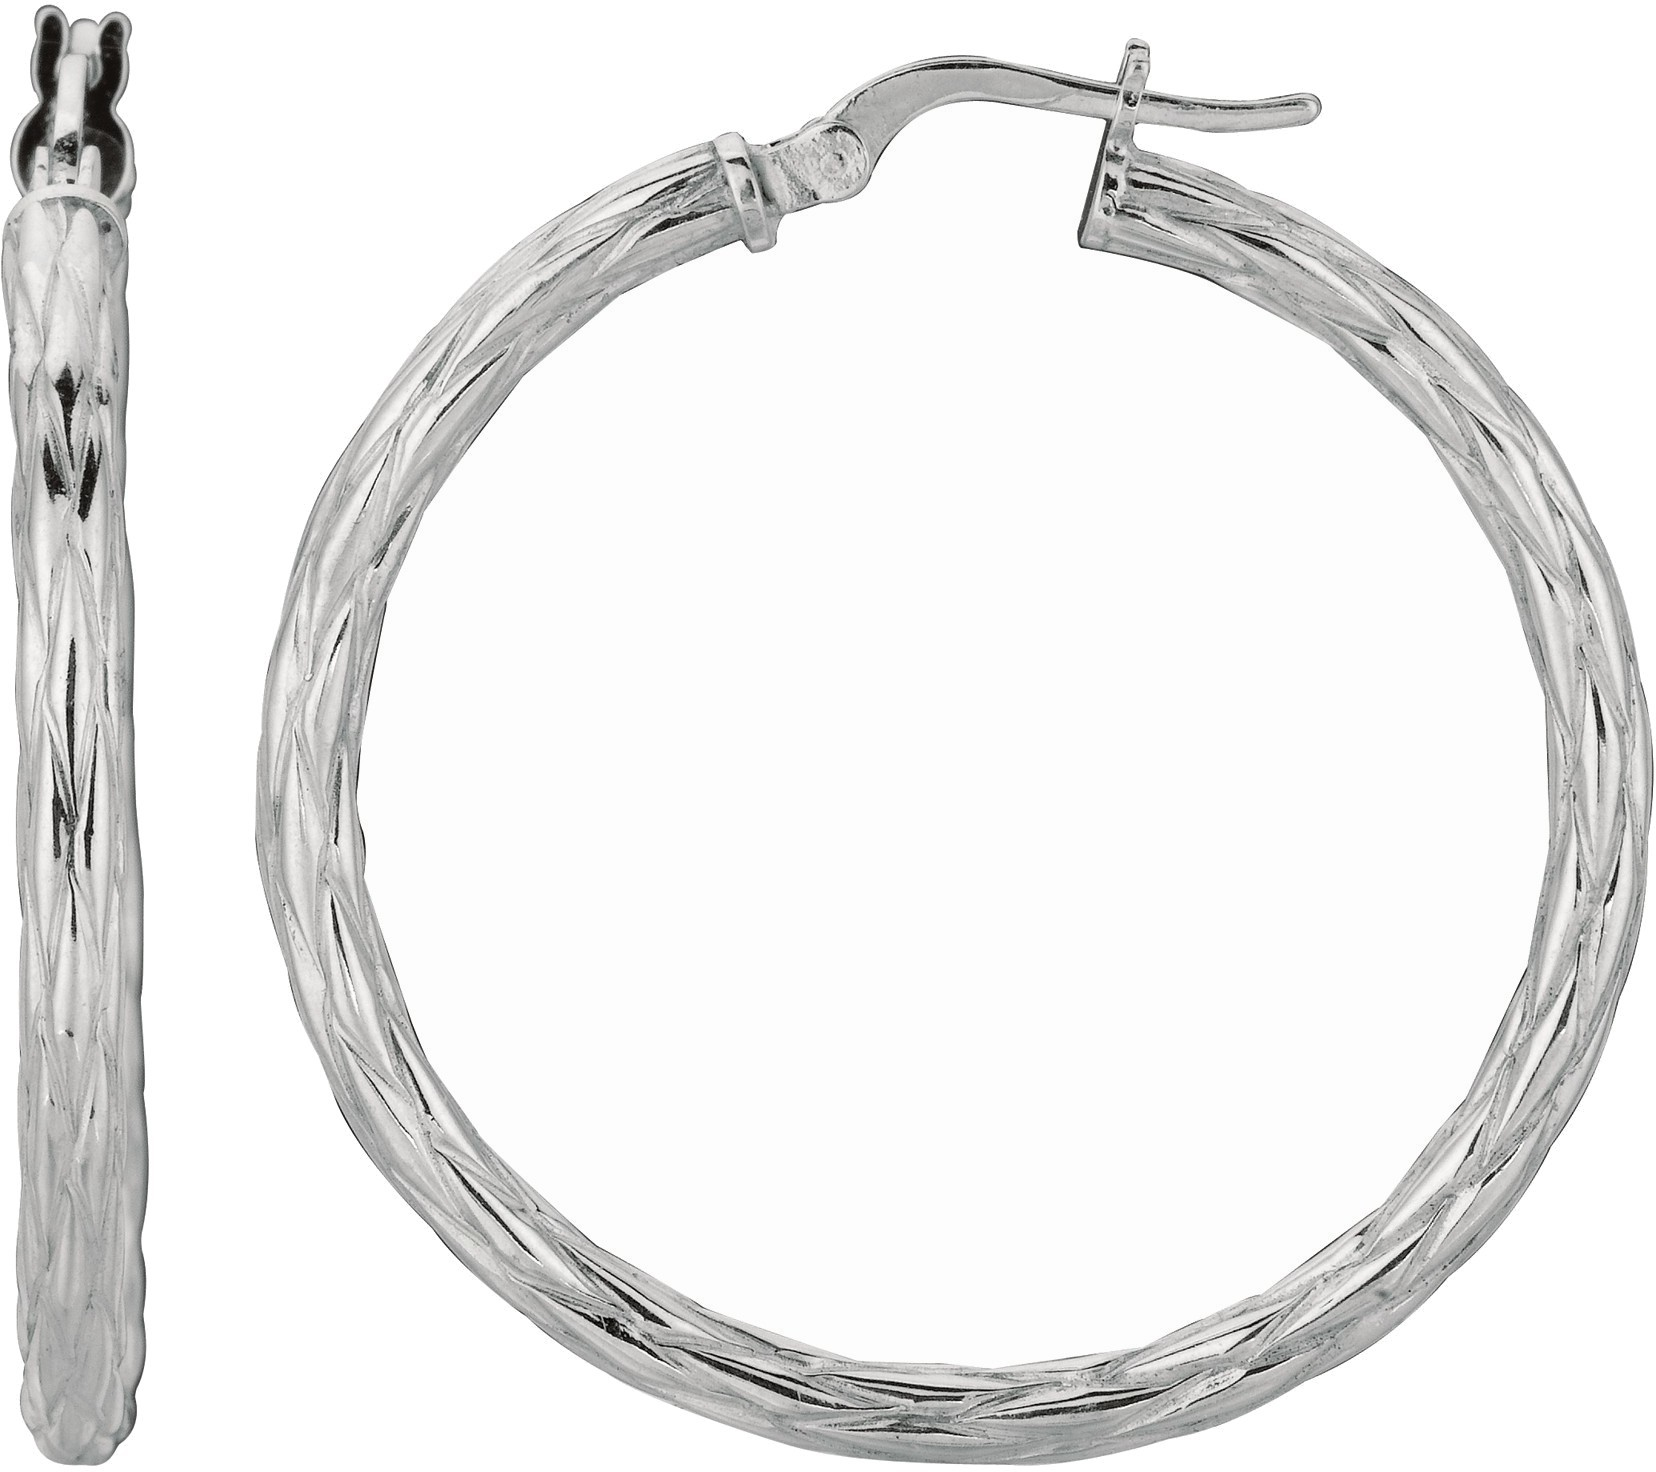 "Silver Rhodium Plated Shiny 3.0x31mm (0.12""x1.22"") Twisted Hoop Earrings - DISCONTINUED"